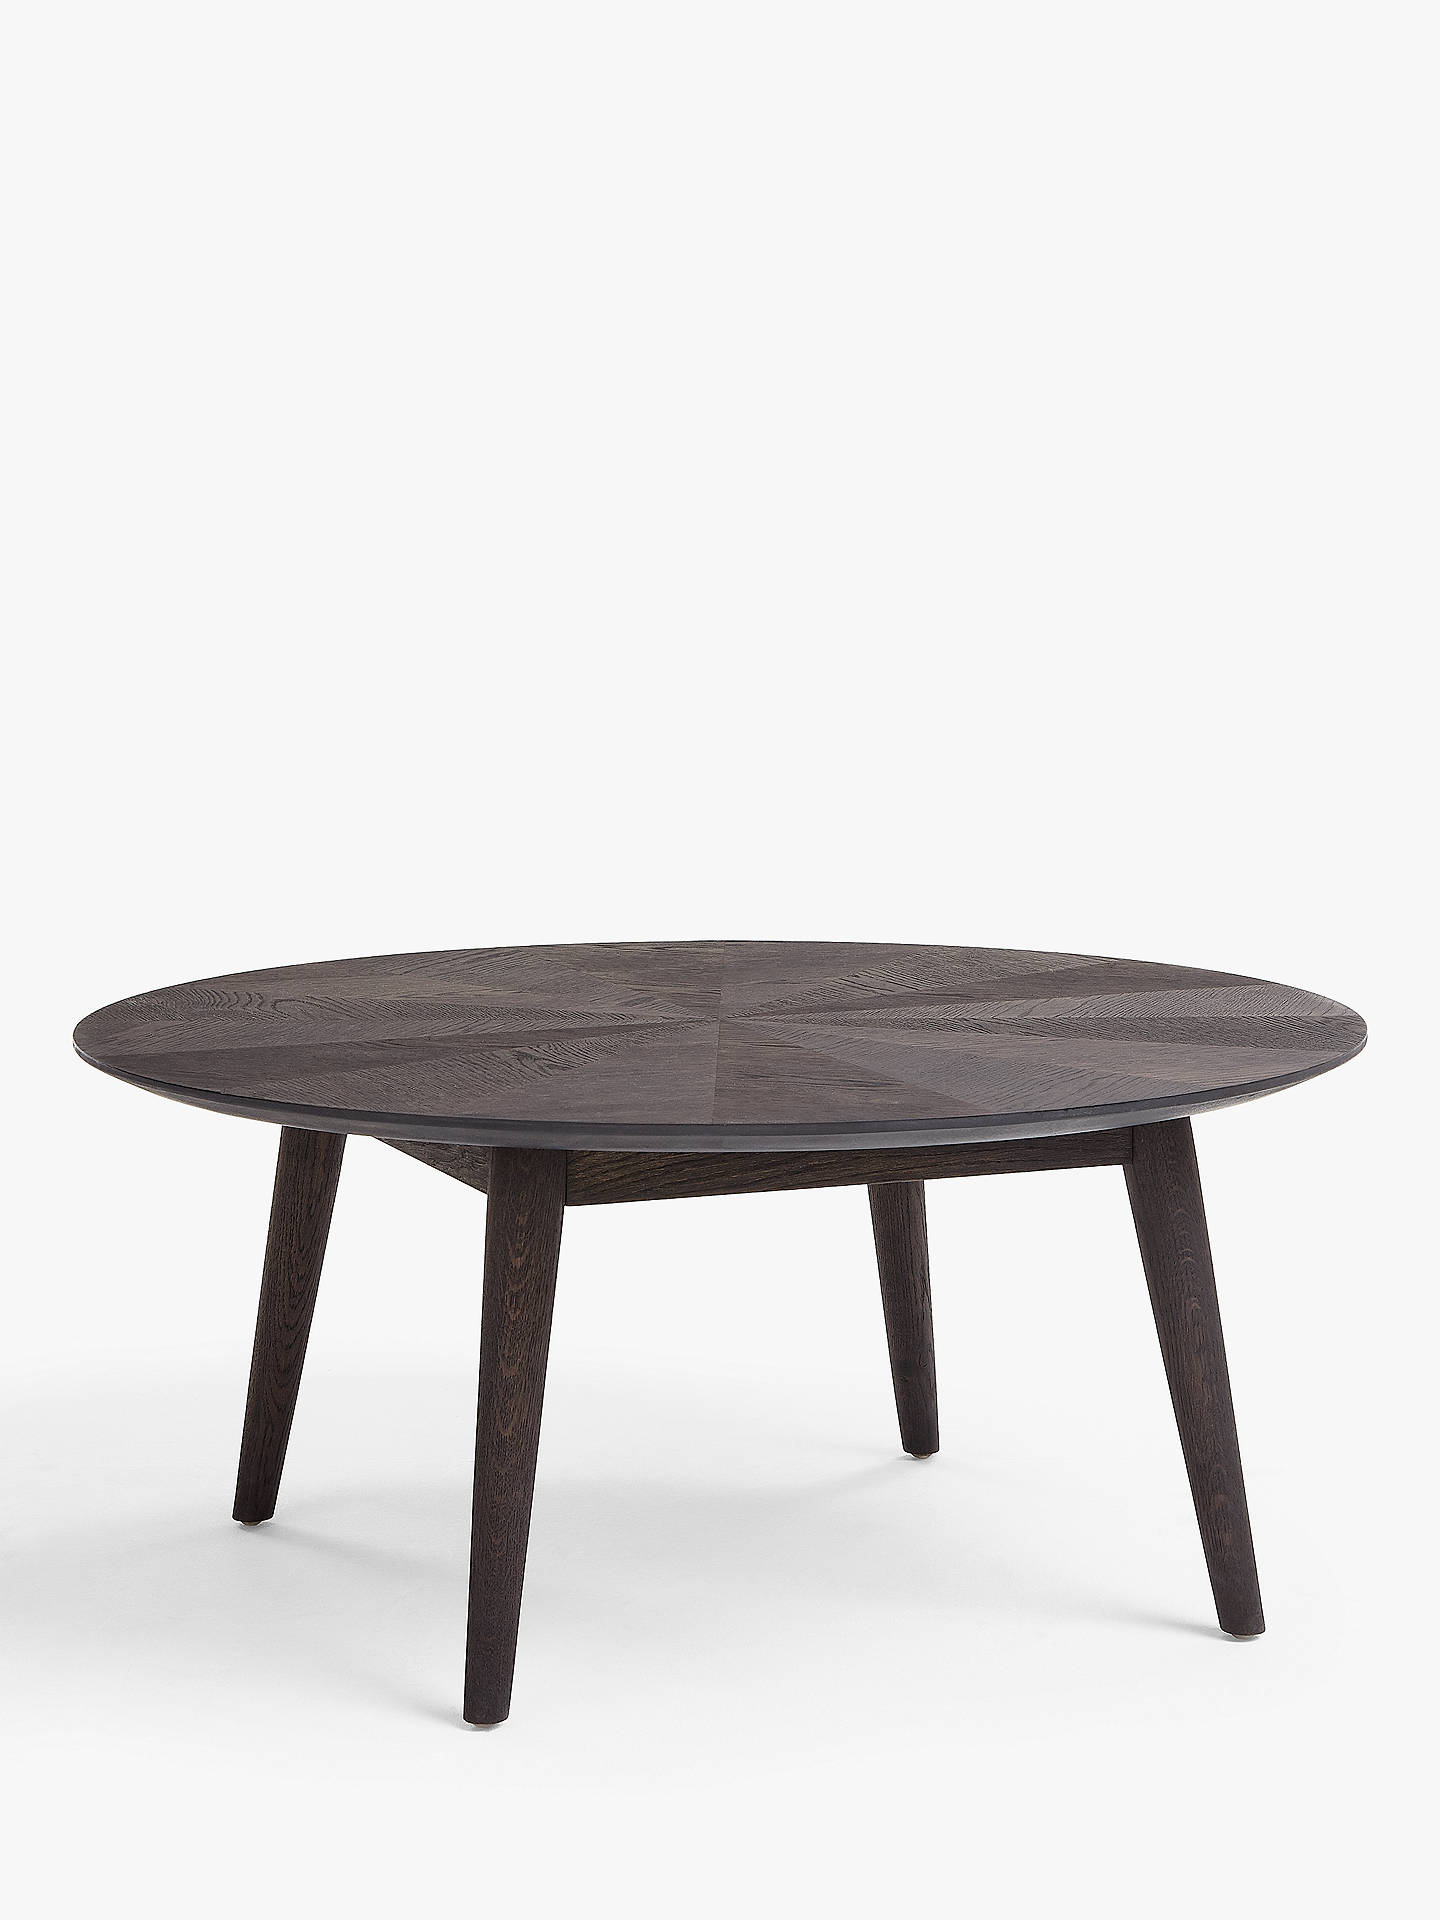 Peachy Croft Collection Iona Coffee Table Black Ibusinesslaw Wood Chair Design Ideas Ibusinesslaworg